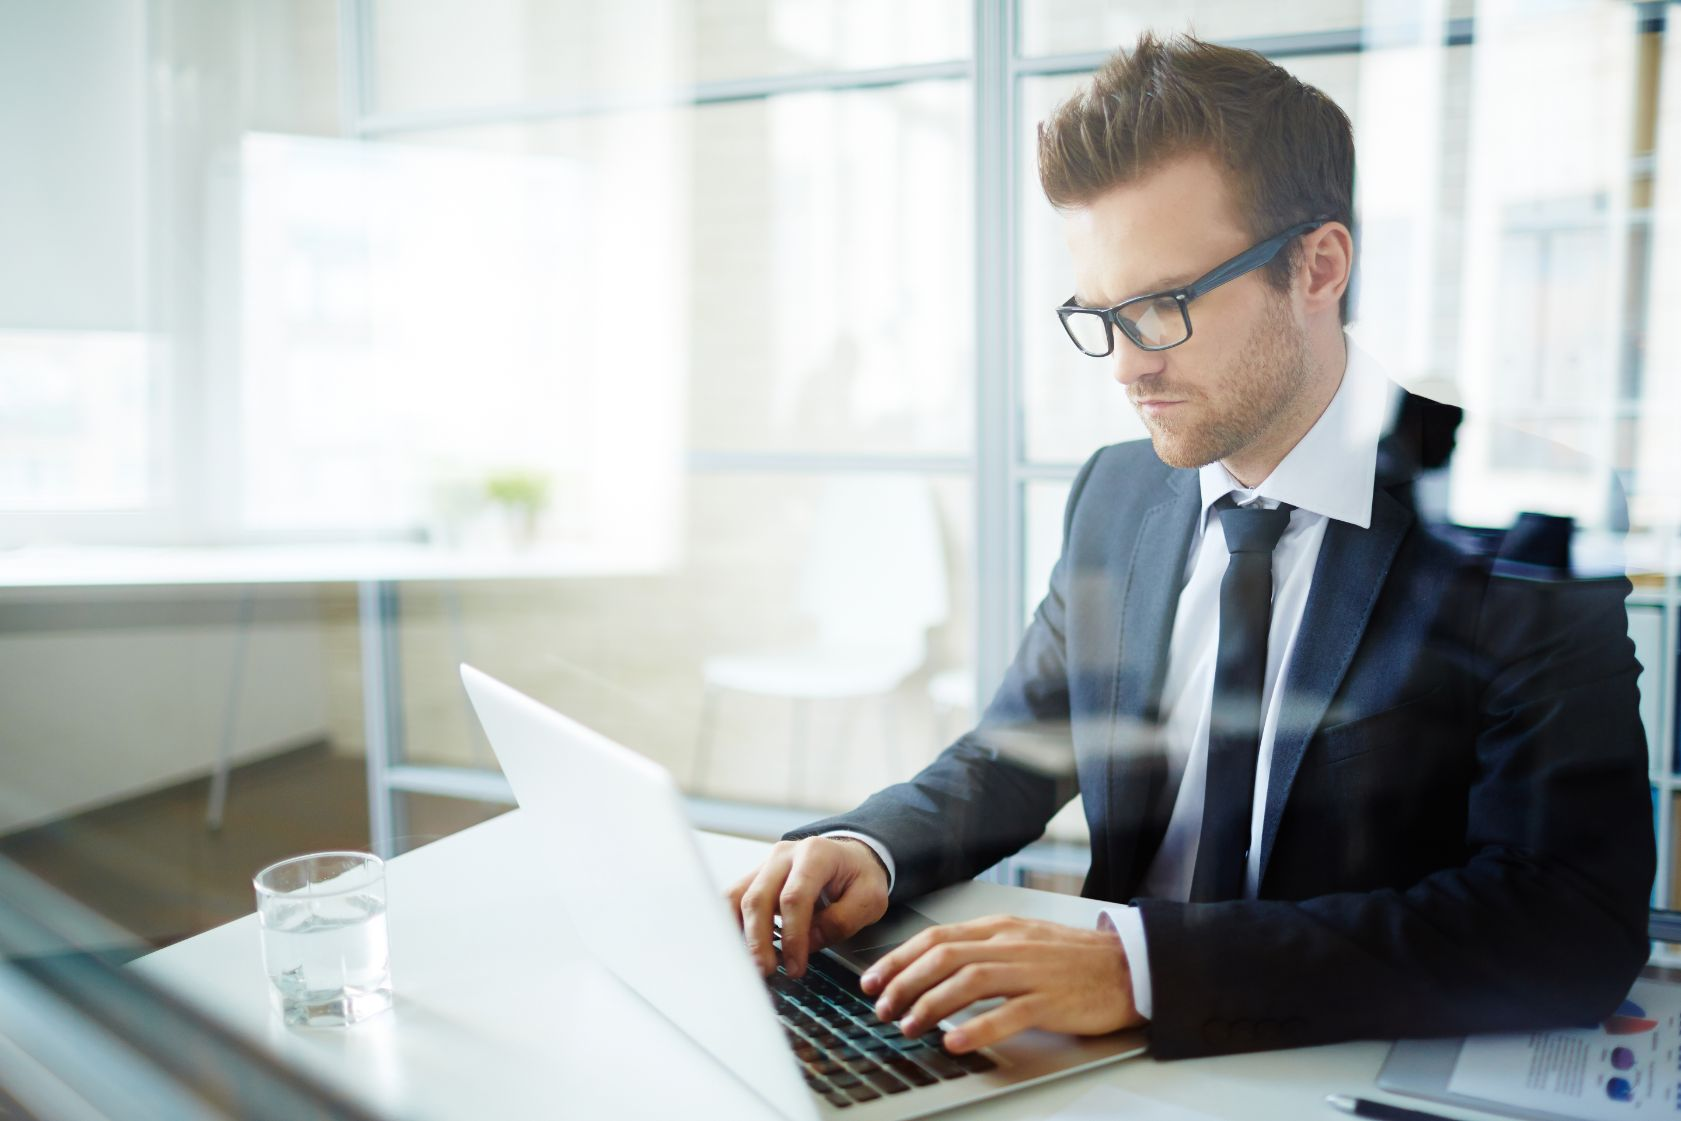 5 Things to Consider Before Hiring Legal Transcription Services